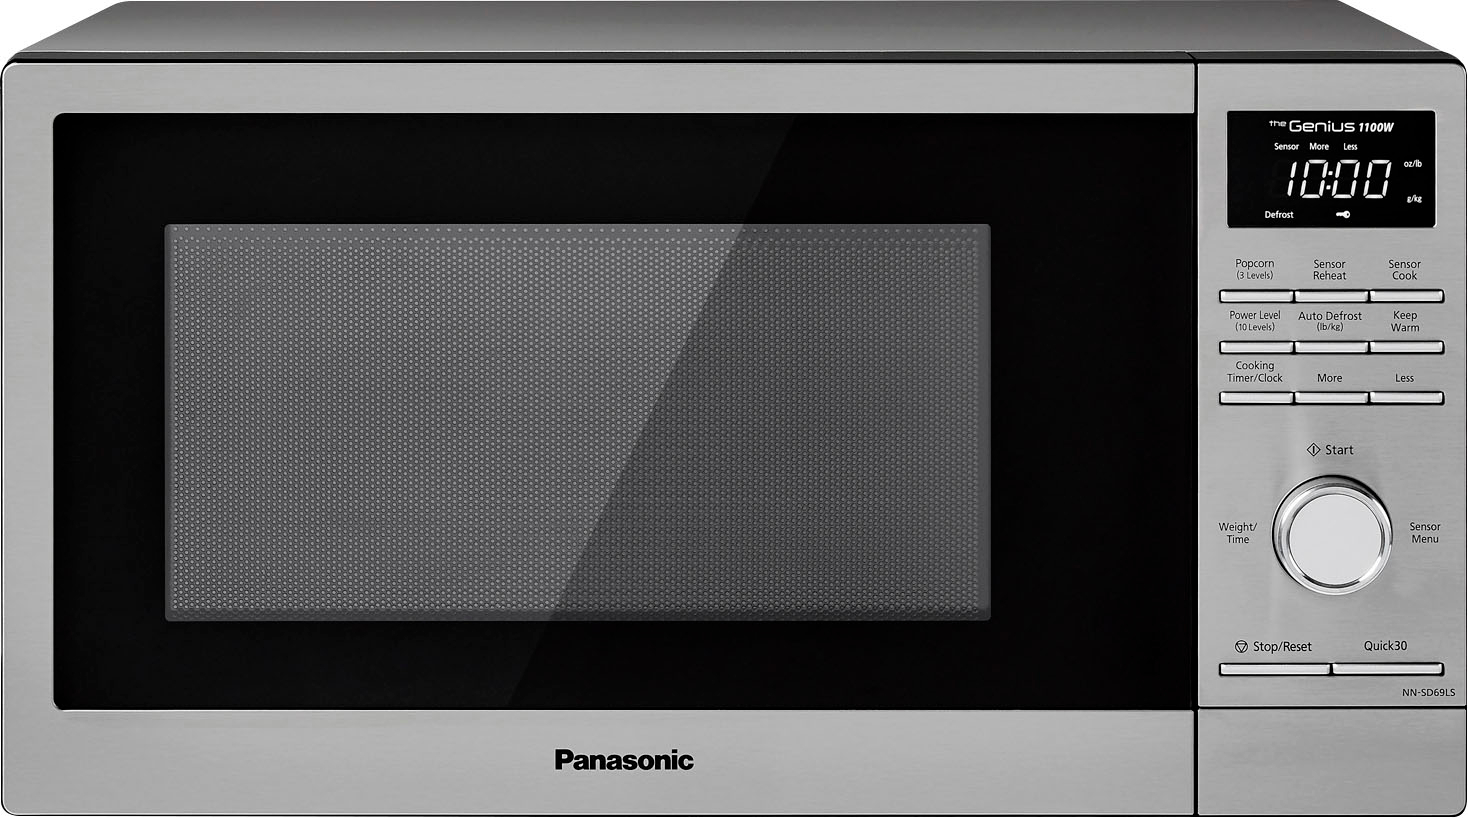 panasonic 1 3 cu ft microwave with sensor cooking stainless steel